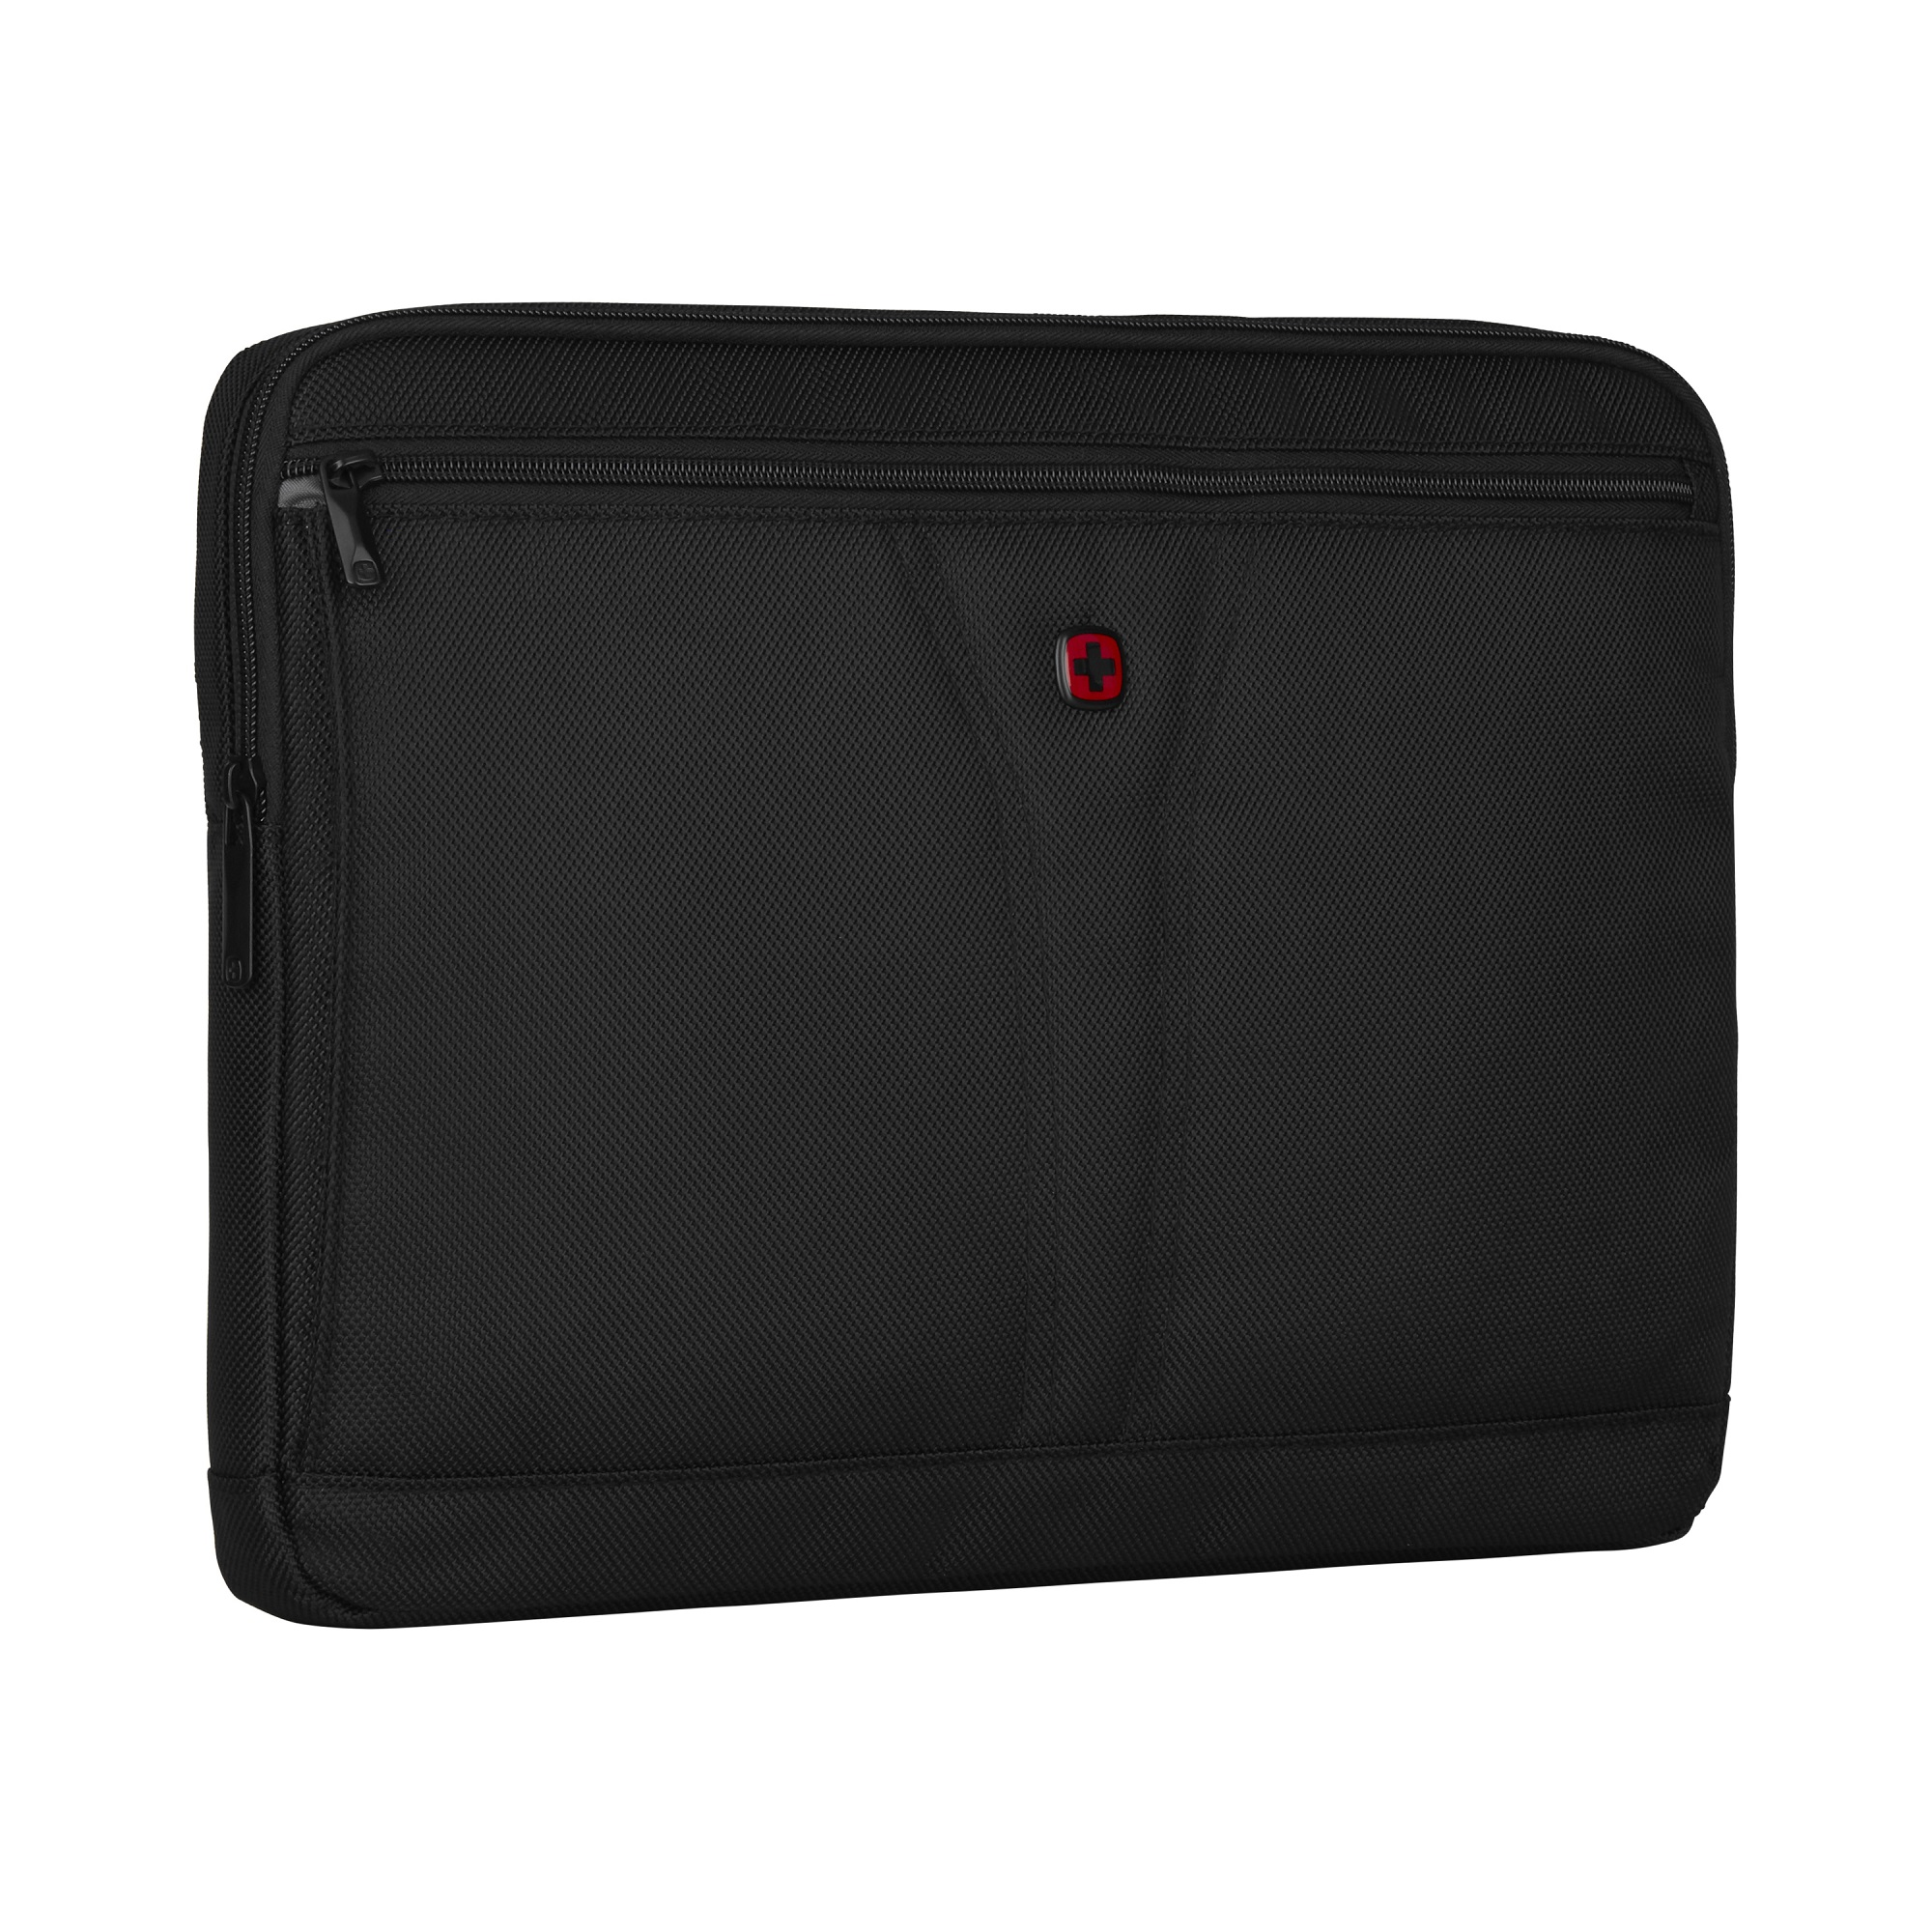 "Wenger/SwissGear BC Top notebook case 39.6 cm (15.6"") Sleeve case Black"